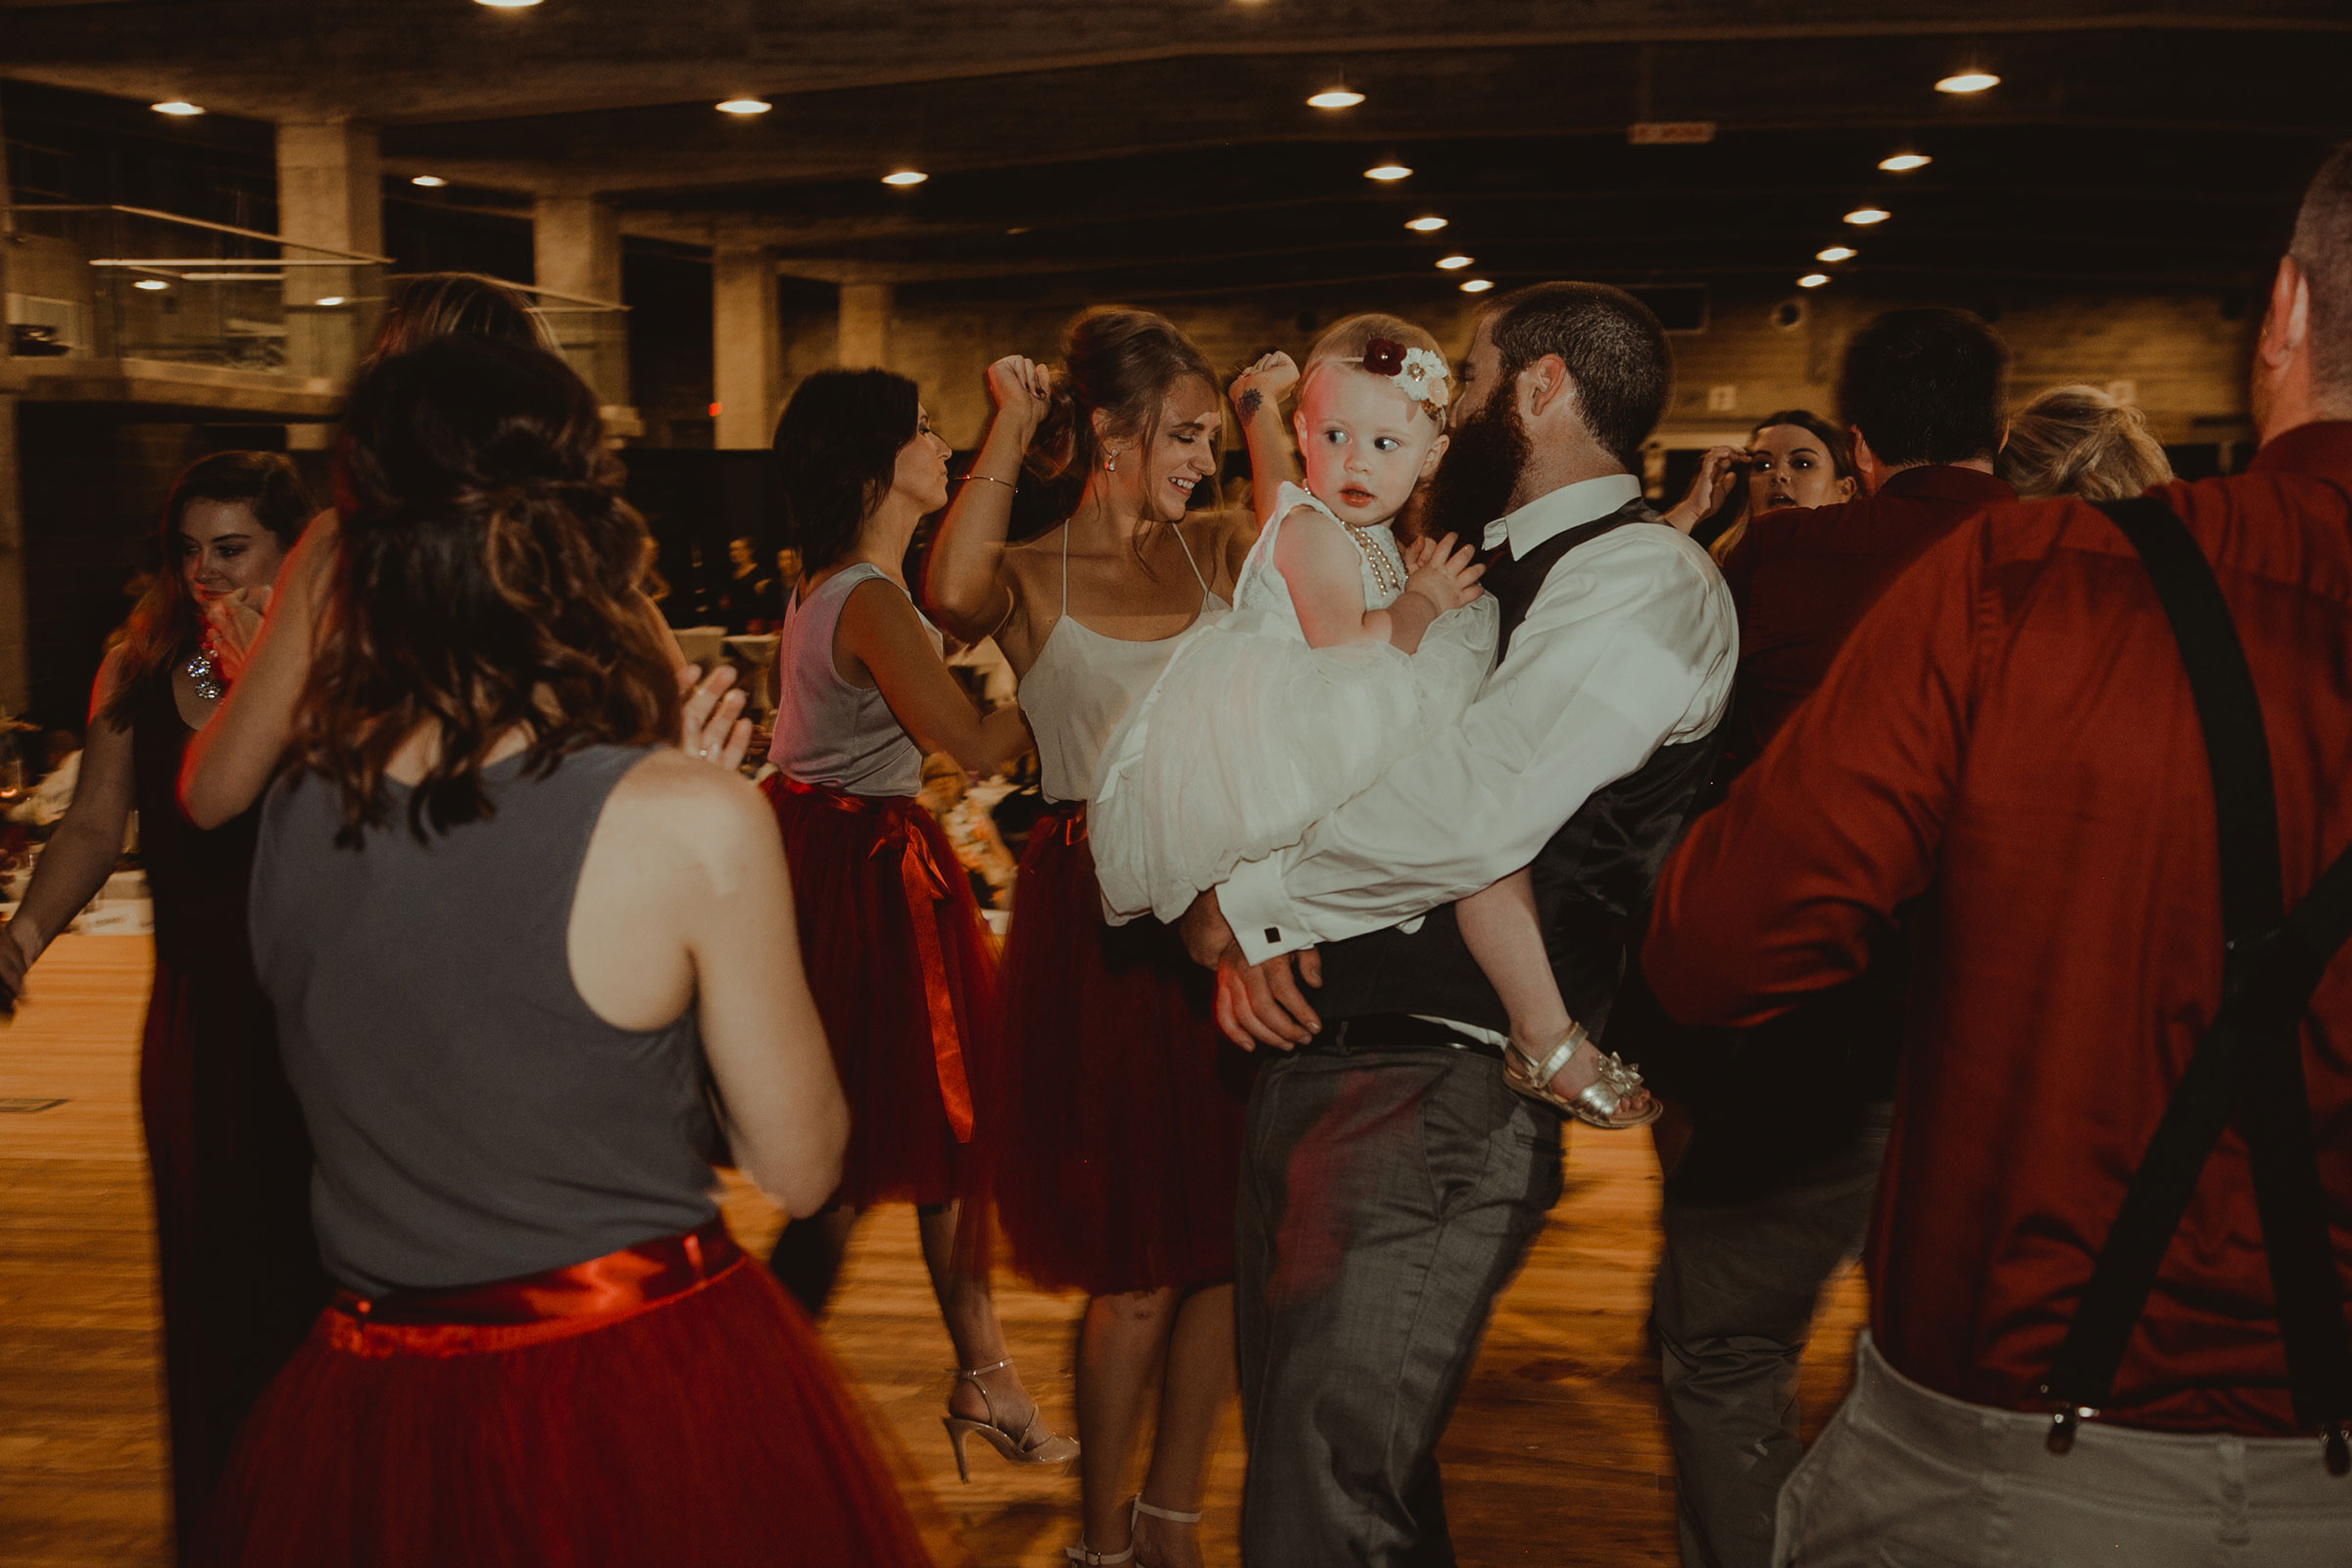 groom-dancing-with-flower-girl-at-reception-pella-plaza-desmoines-iowa-raelyn-ramey-photography.jpg